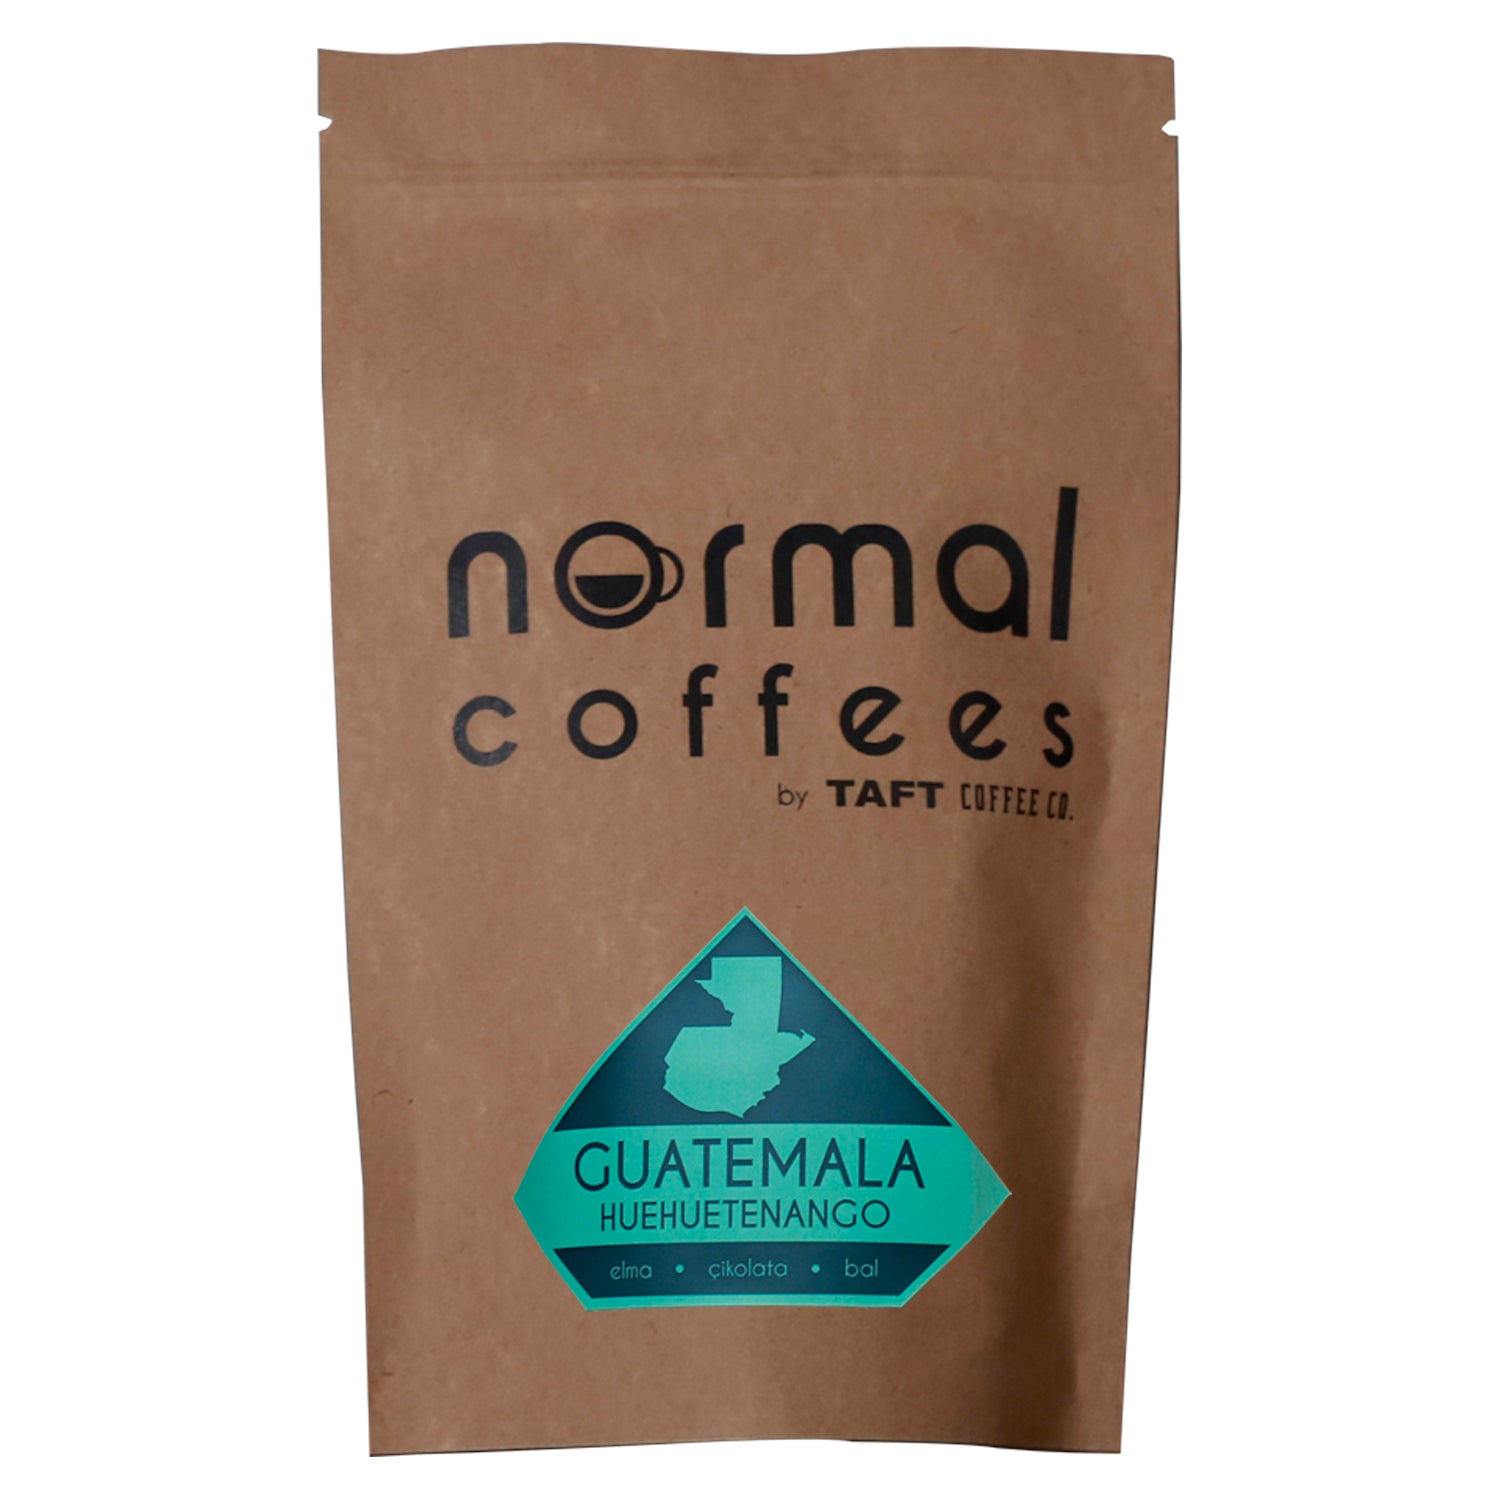 Normal Coffees by TAFT Coffee Co. Guatemala